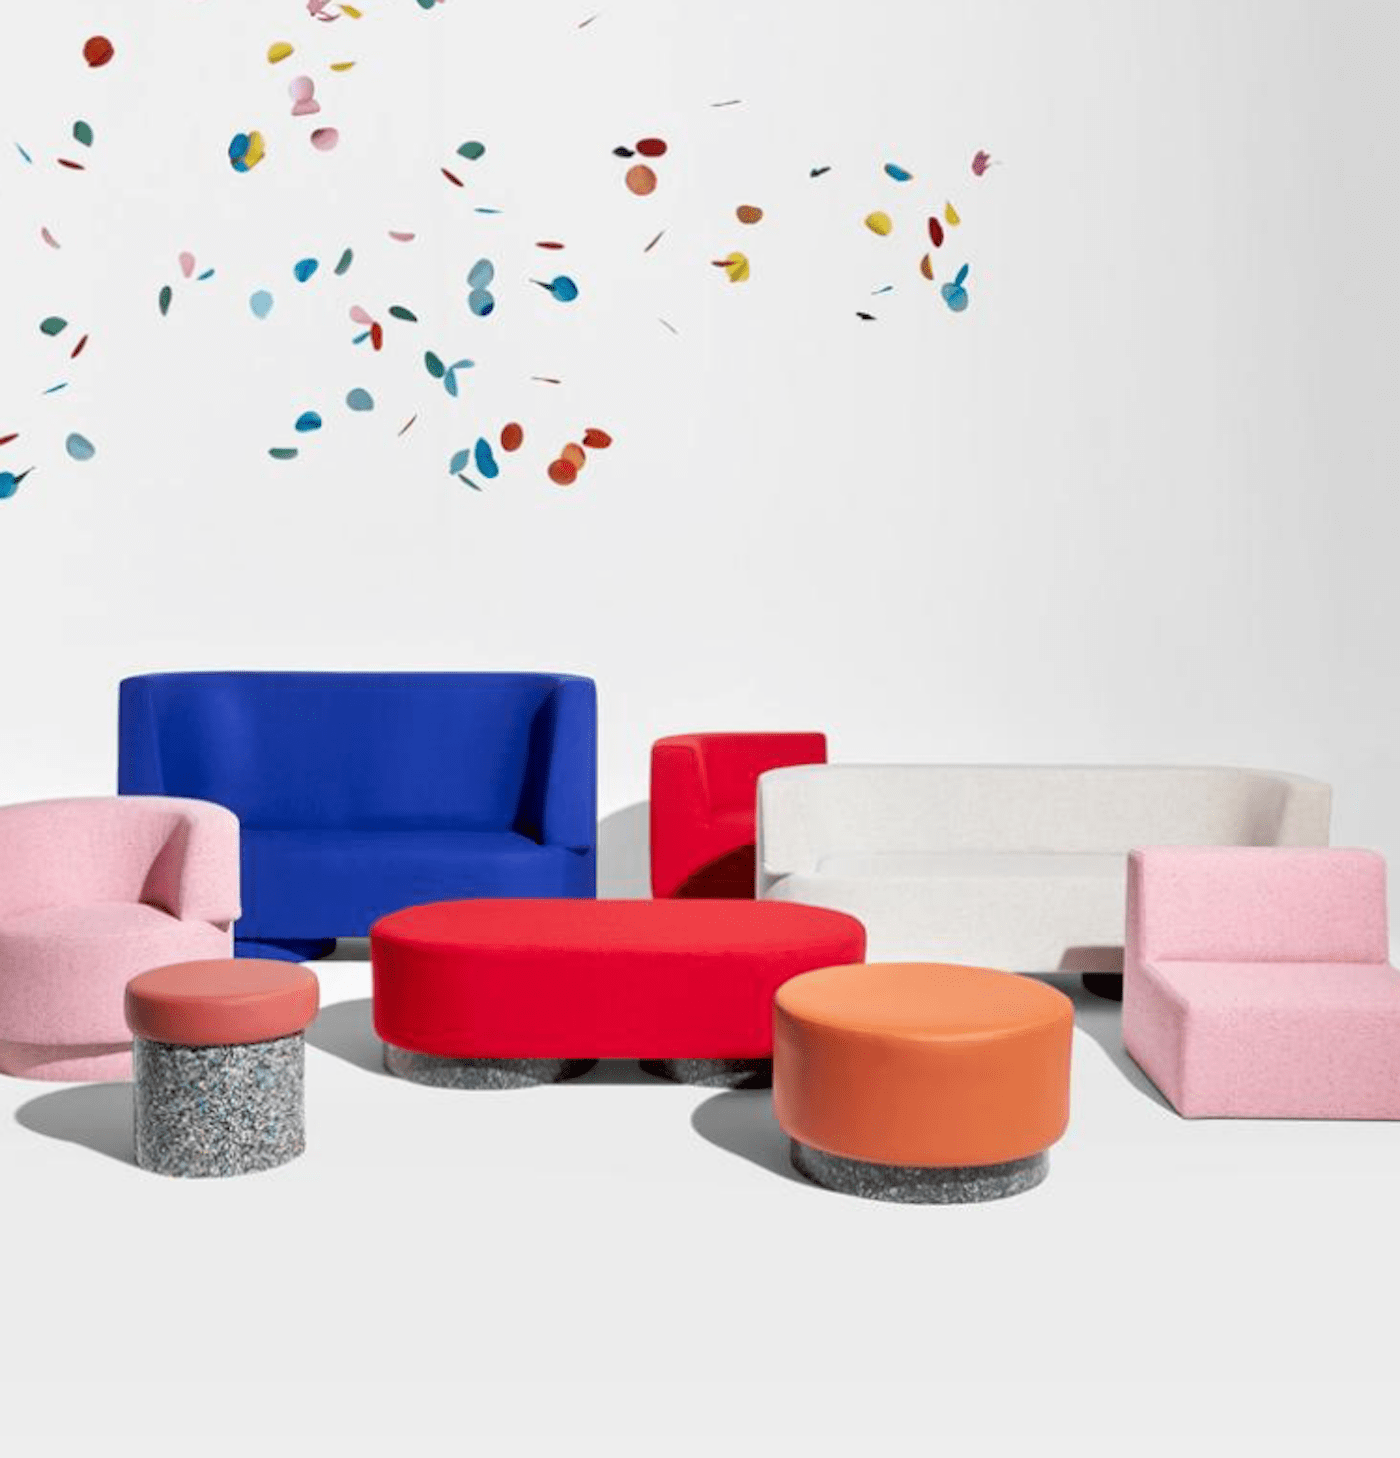 Eco Edition_Design By Them_Confetti range_Sustainable architecture interiors products 5